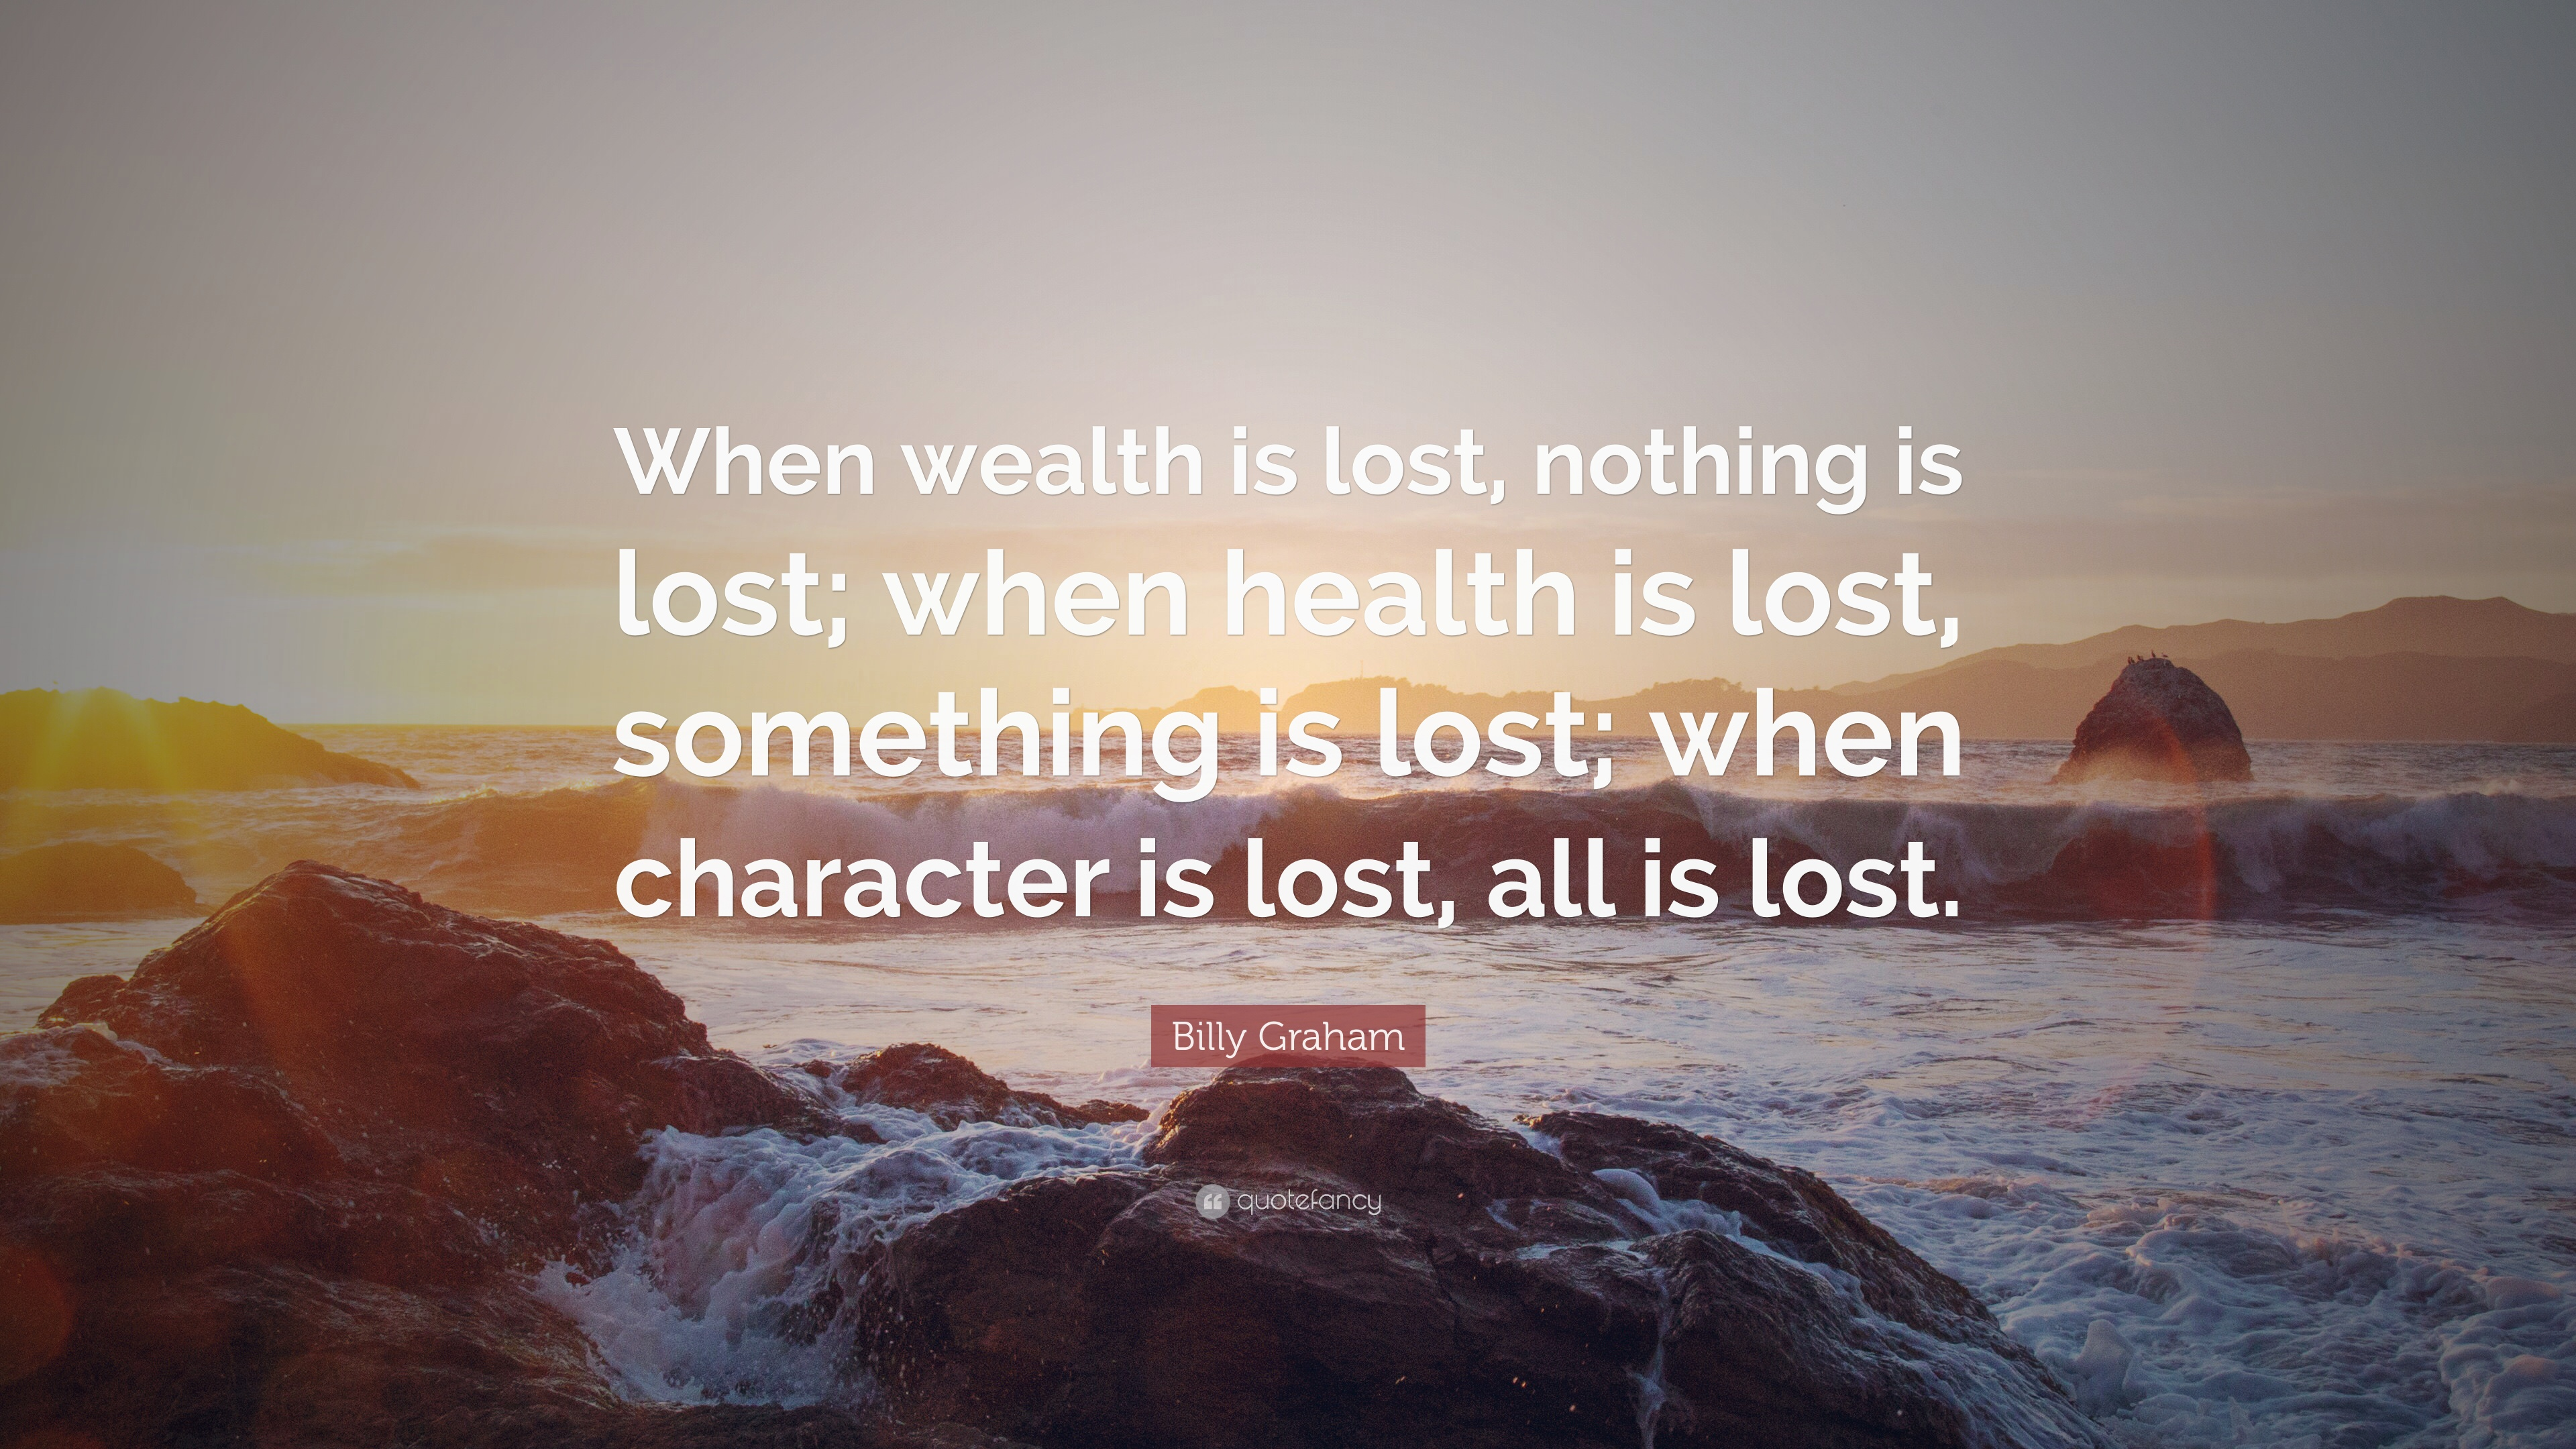 Christian Inspirational Wallpapers With Quotes Billy Graham Quote When Wealth Is Lost Nothing Is Lost